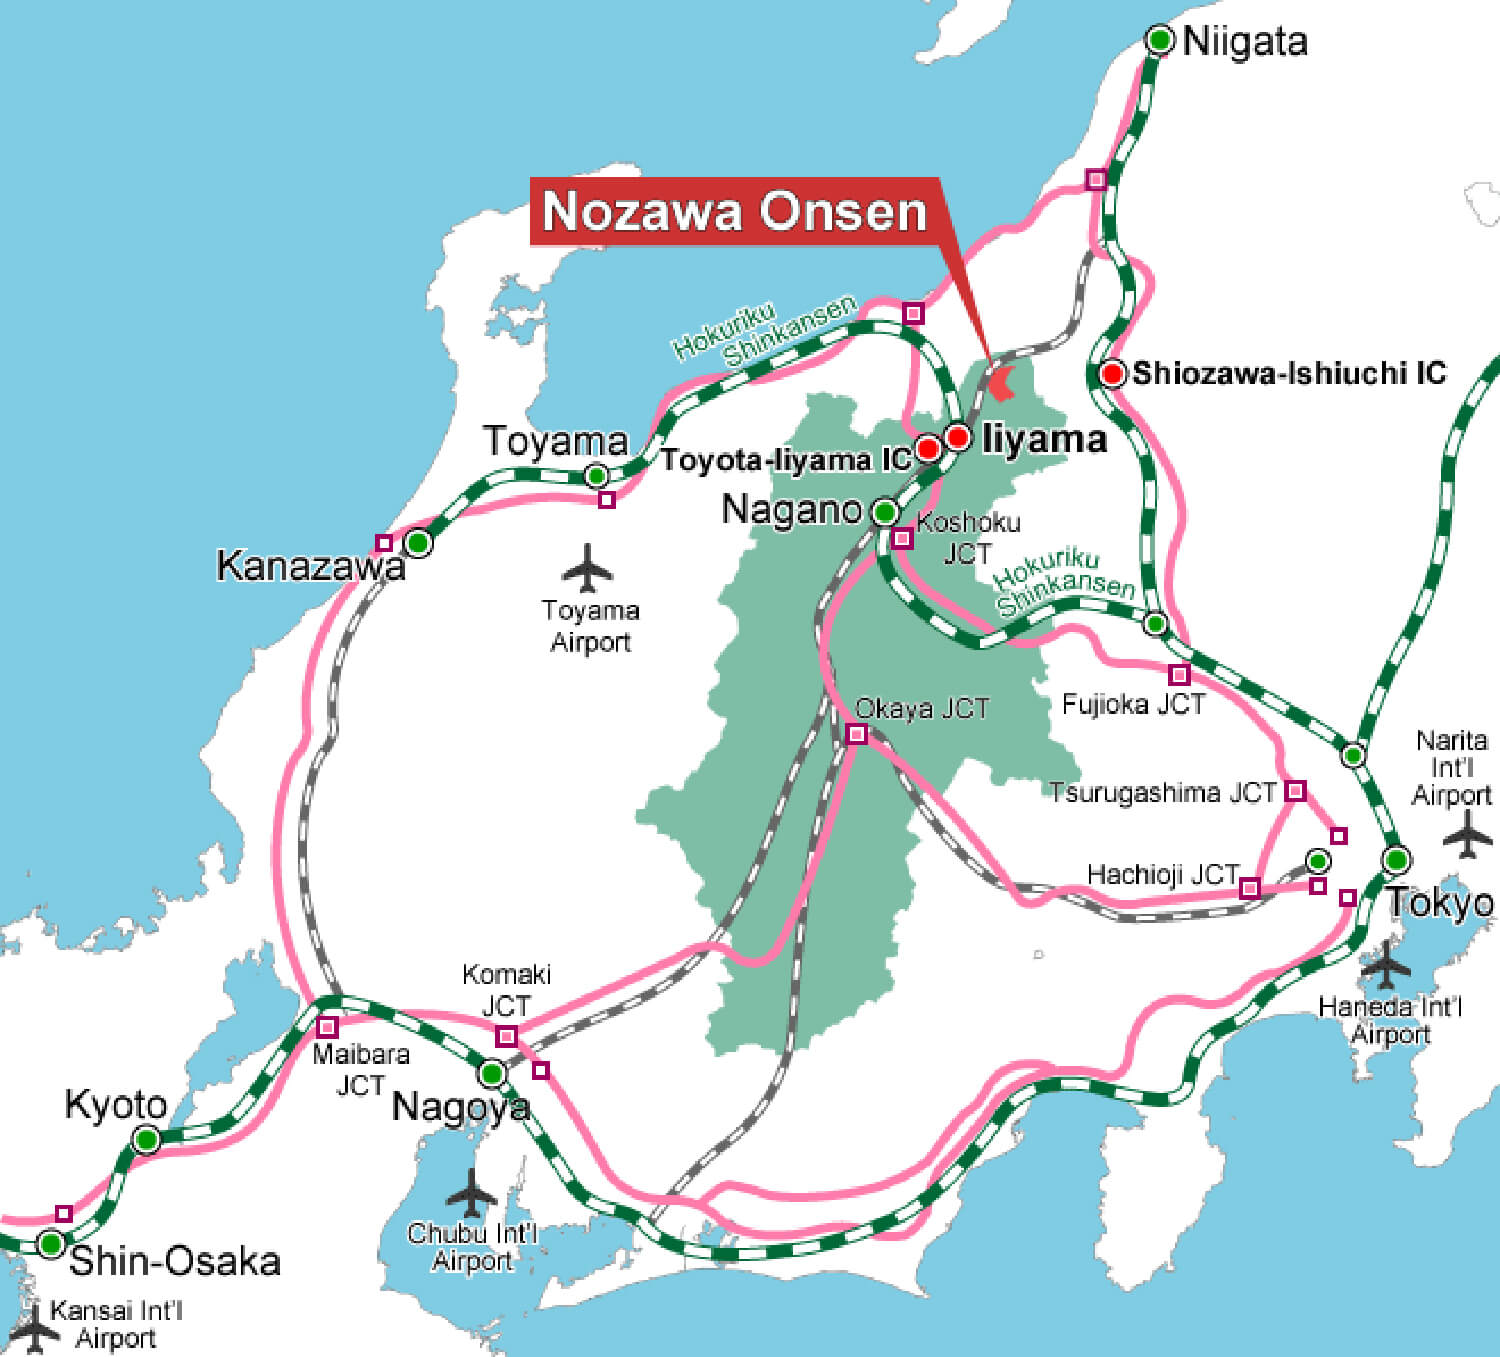 NOZAWAONSEN MAP